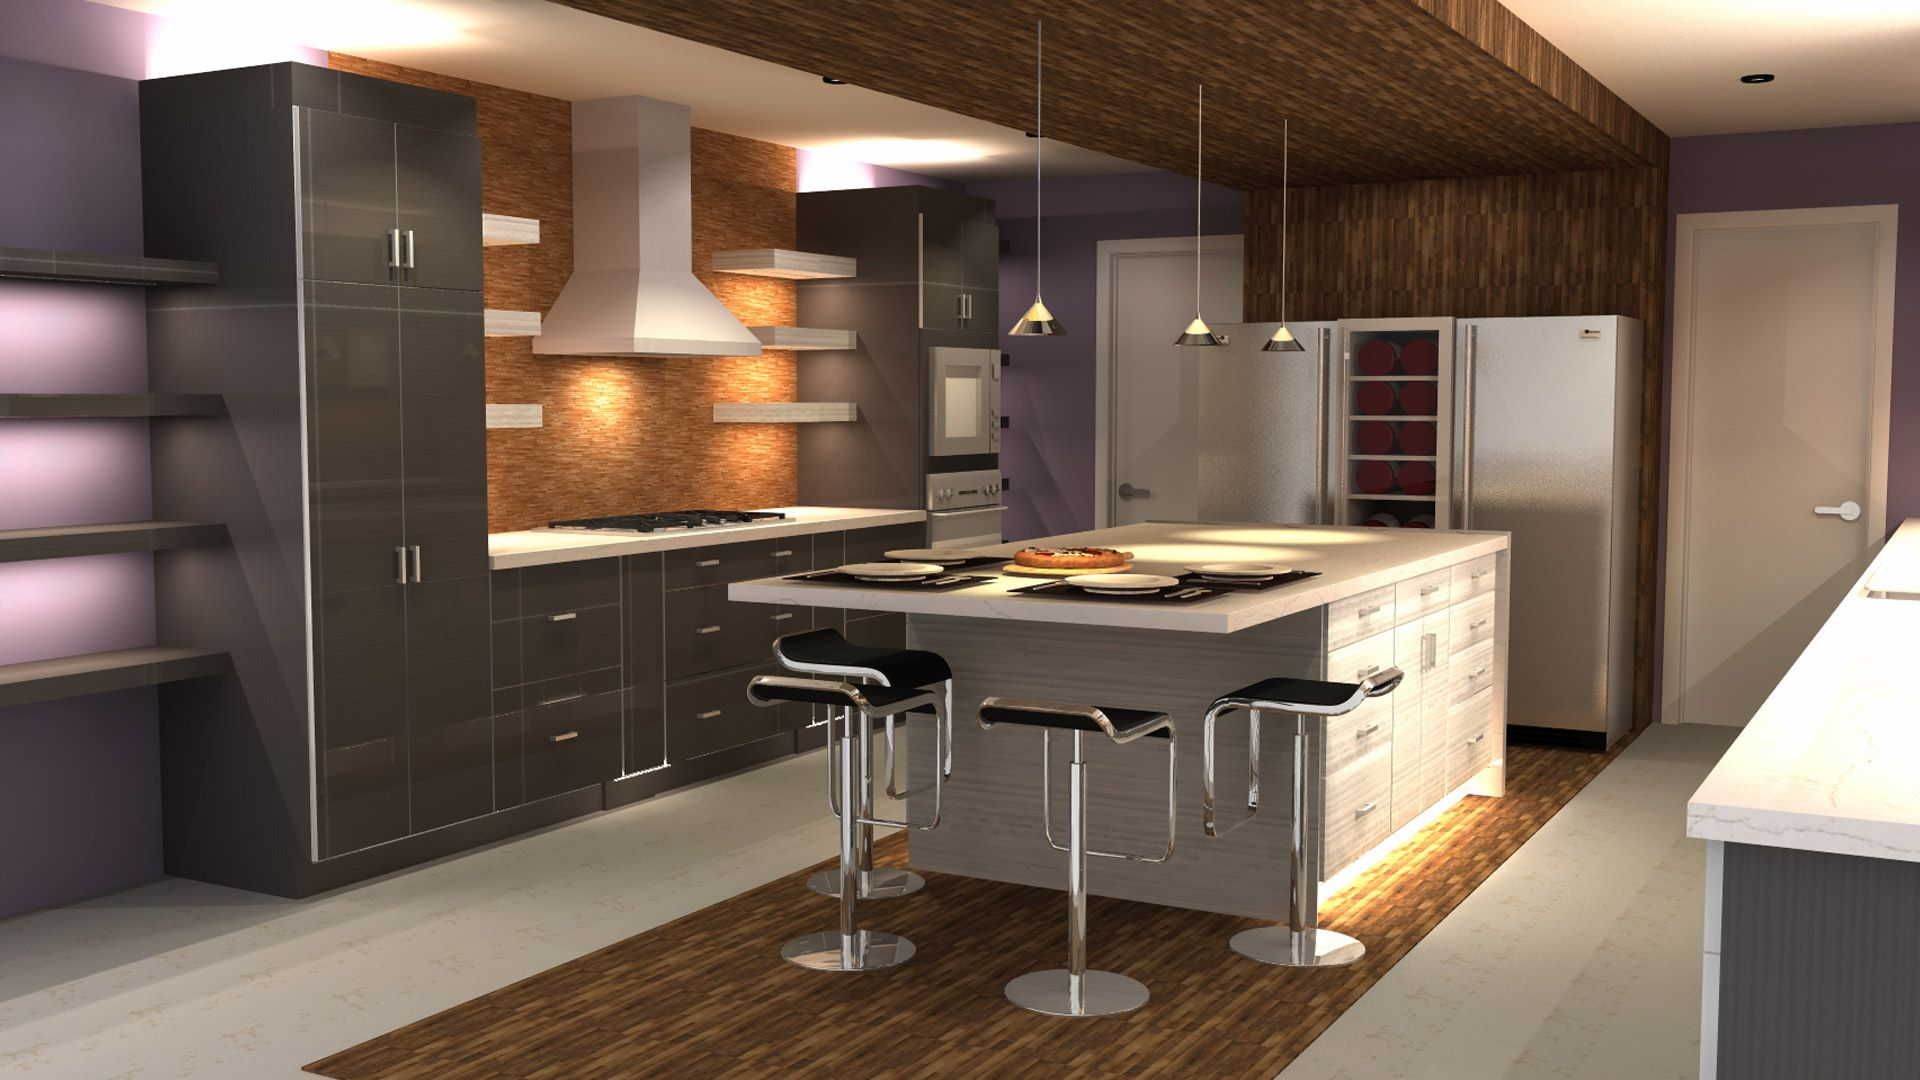 15 + Modern Kitchen Design Ideas Tips Modern kitchen